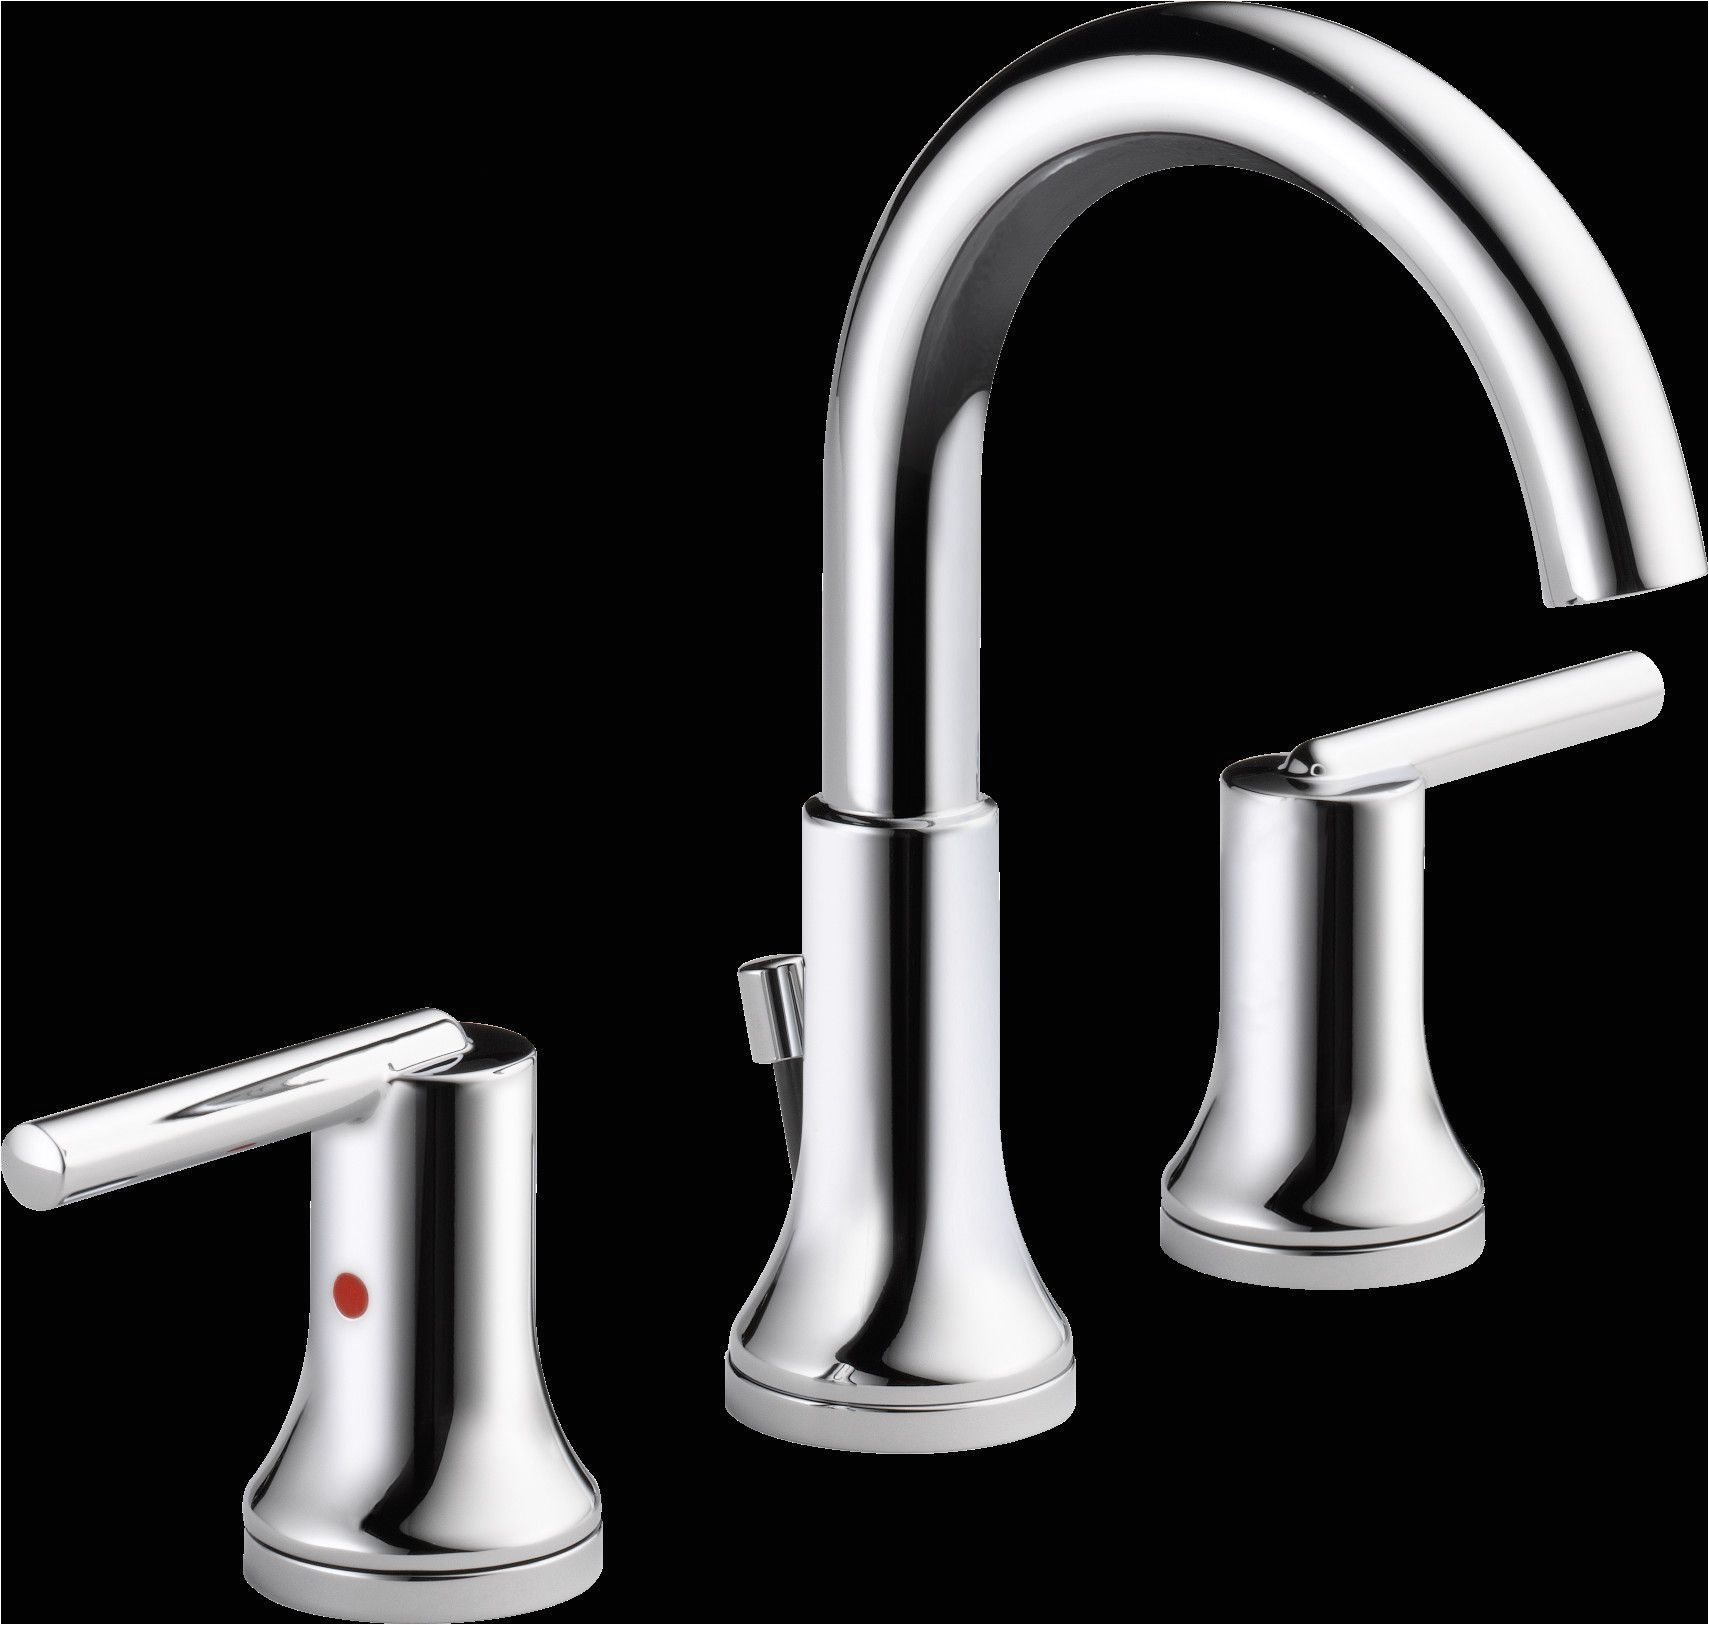 trinsica bathroom widespread bathroom faucet with drain assembly and diamond seal technology